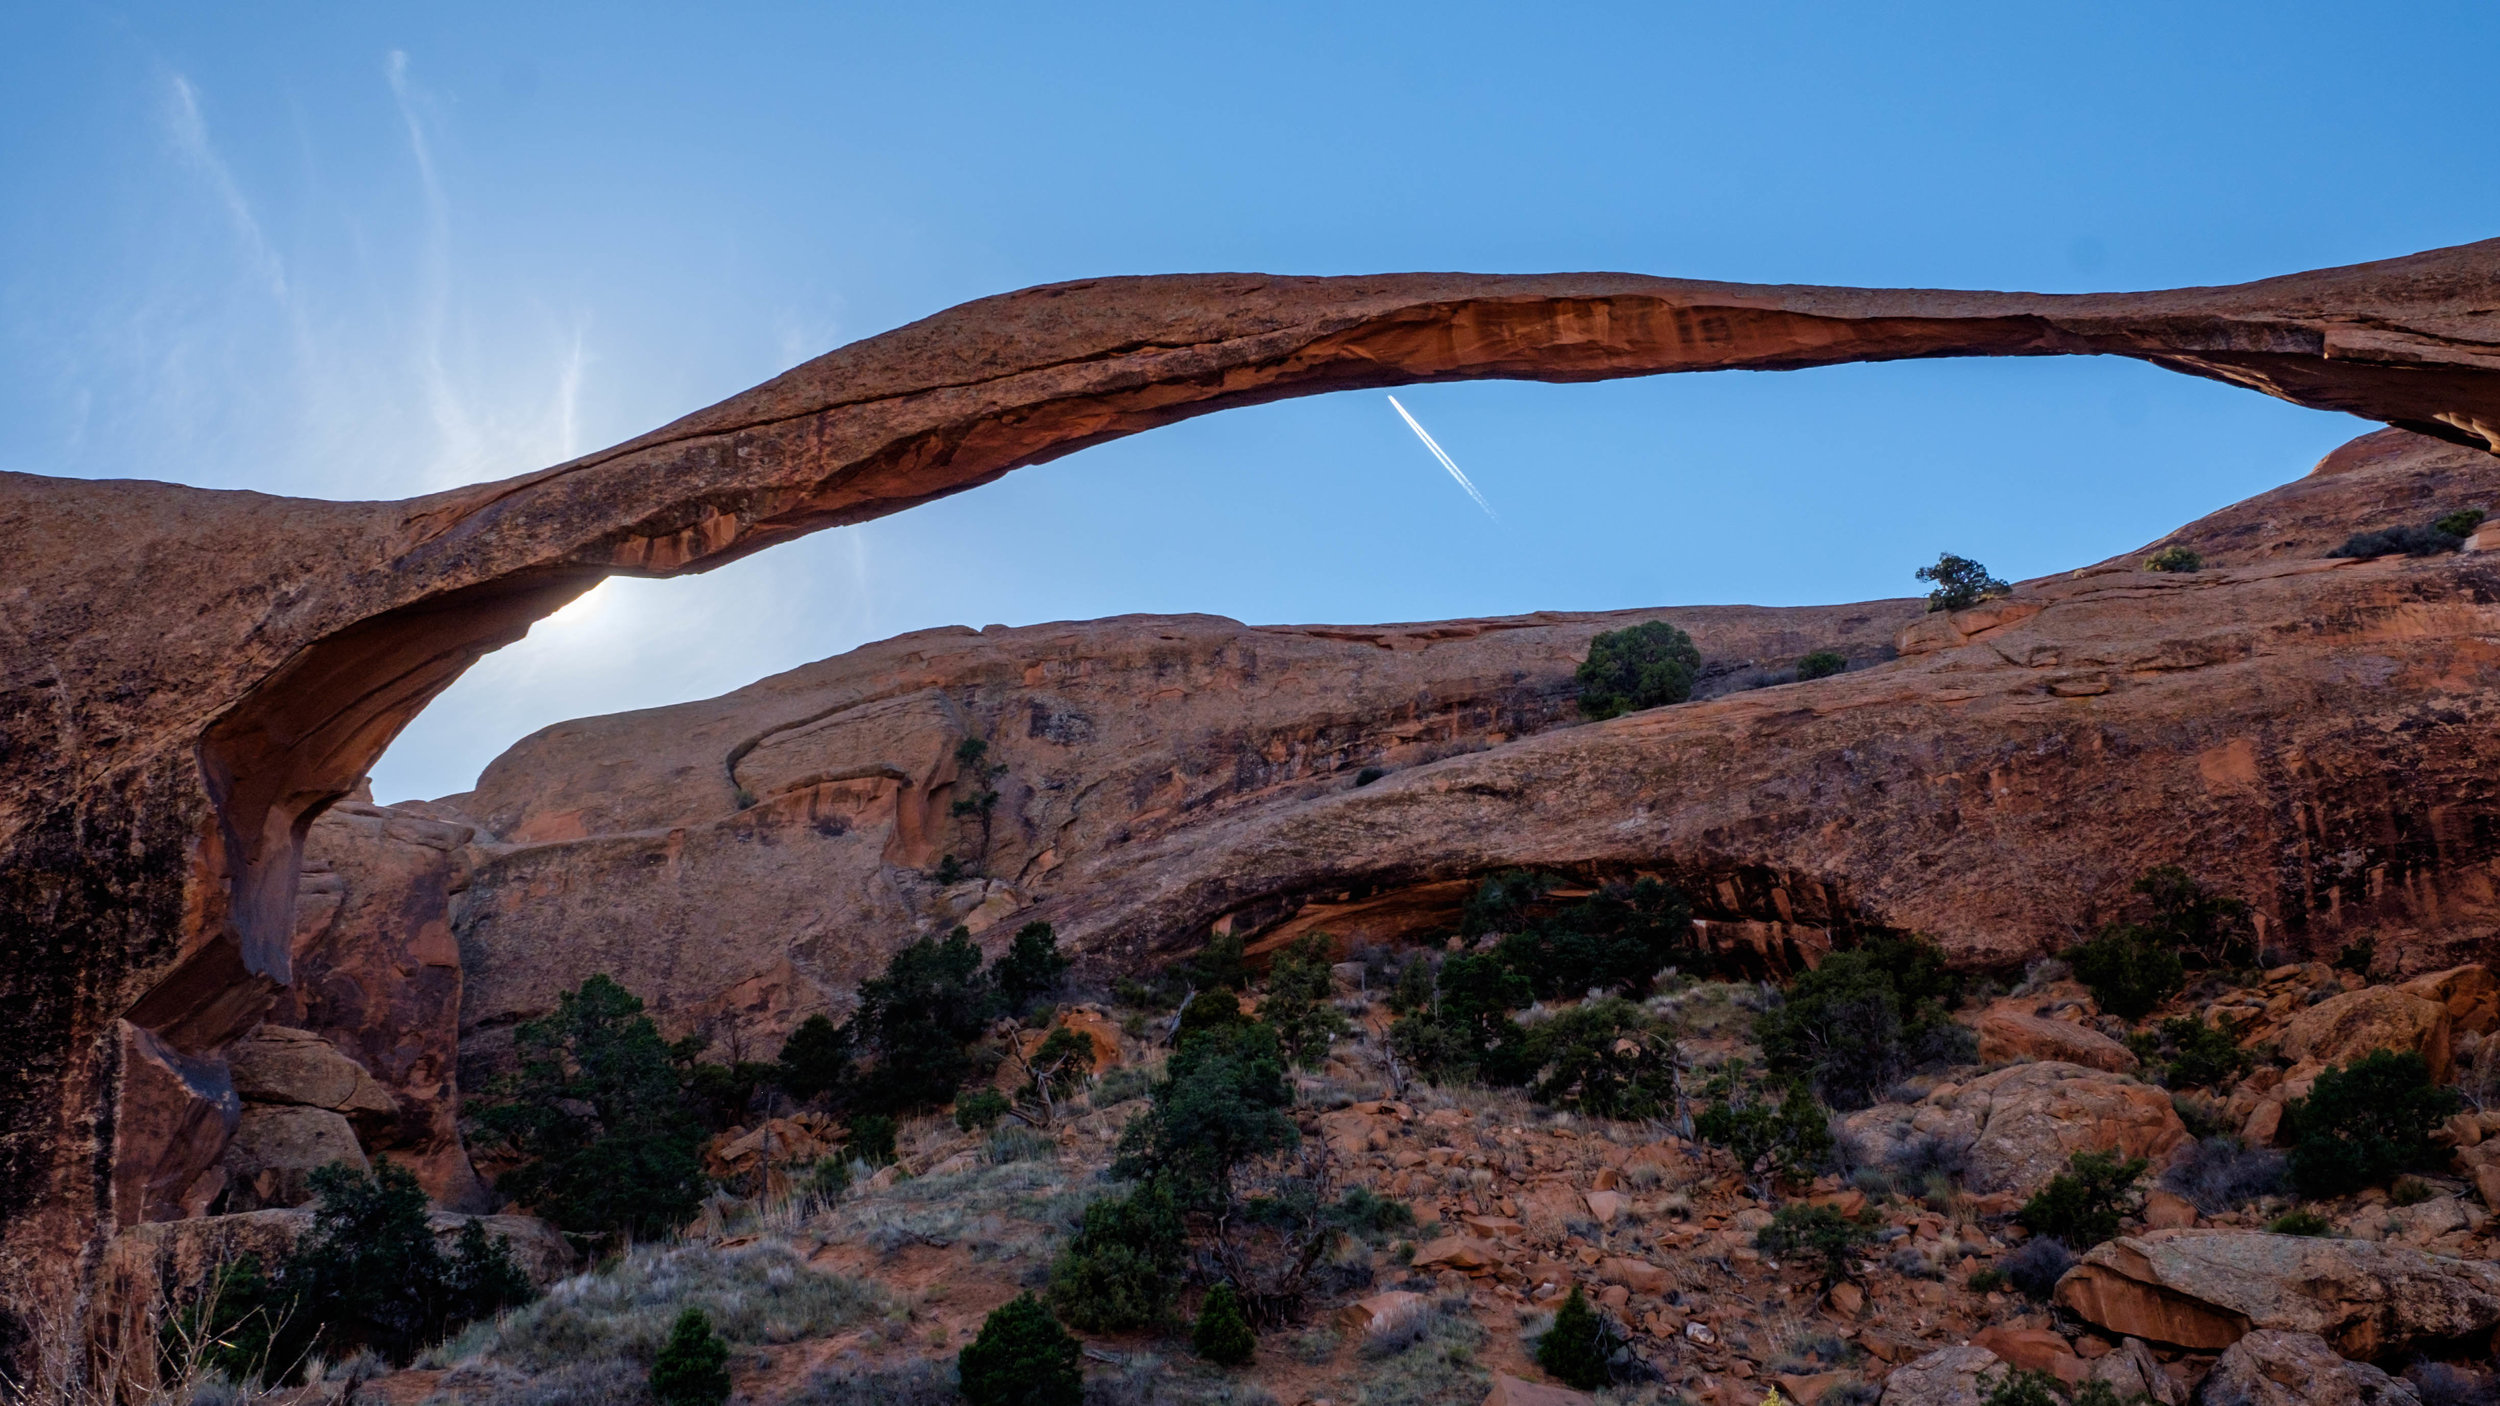 The very fragile Landscape Arch has the widest opening of any arch in North America.